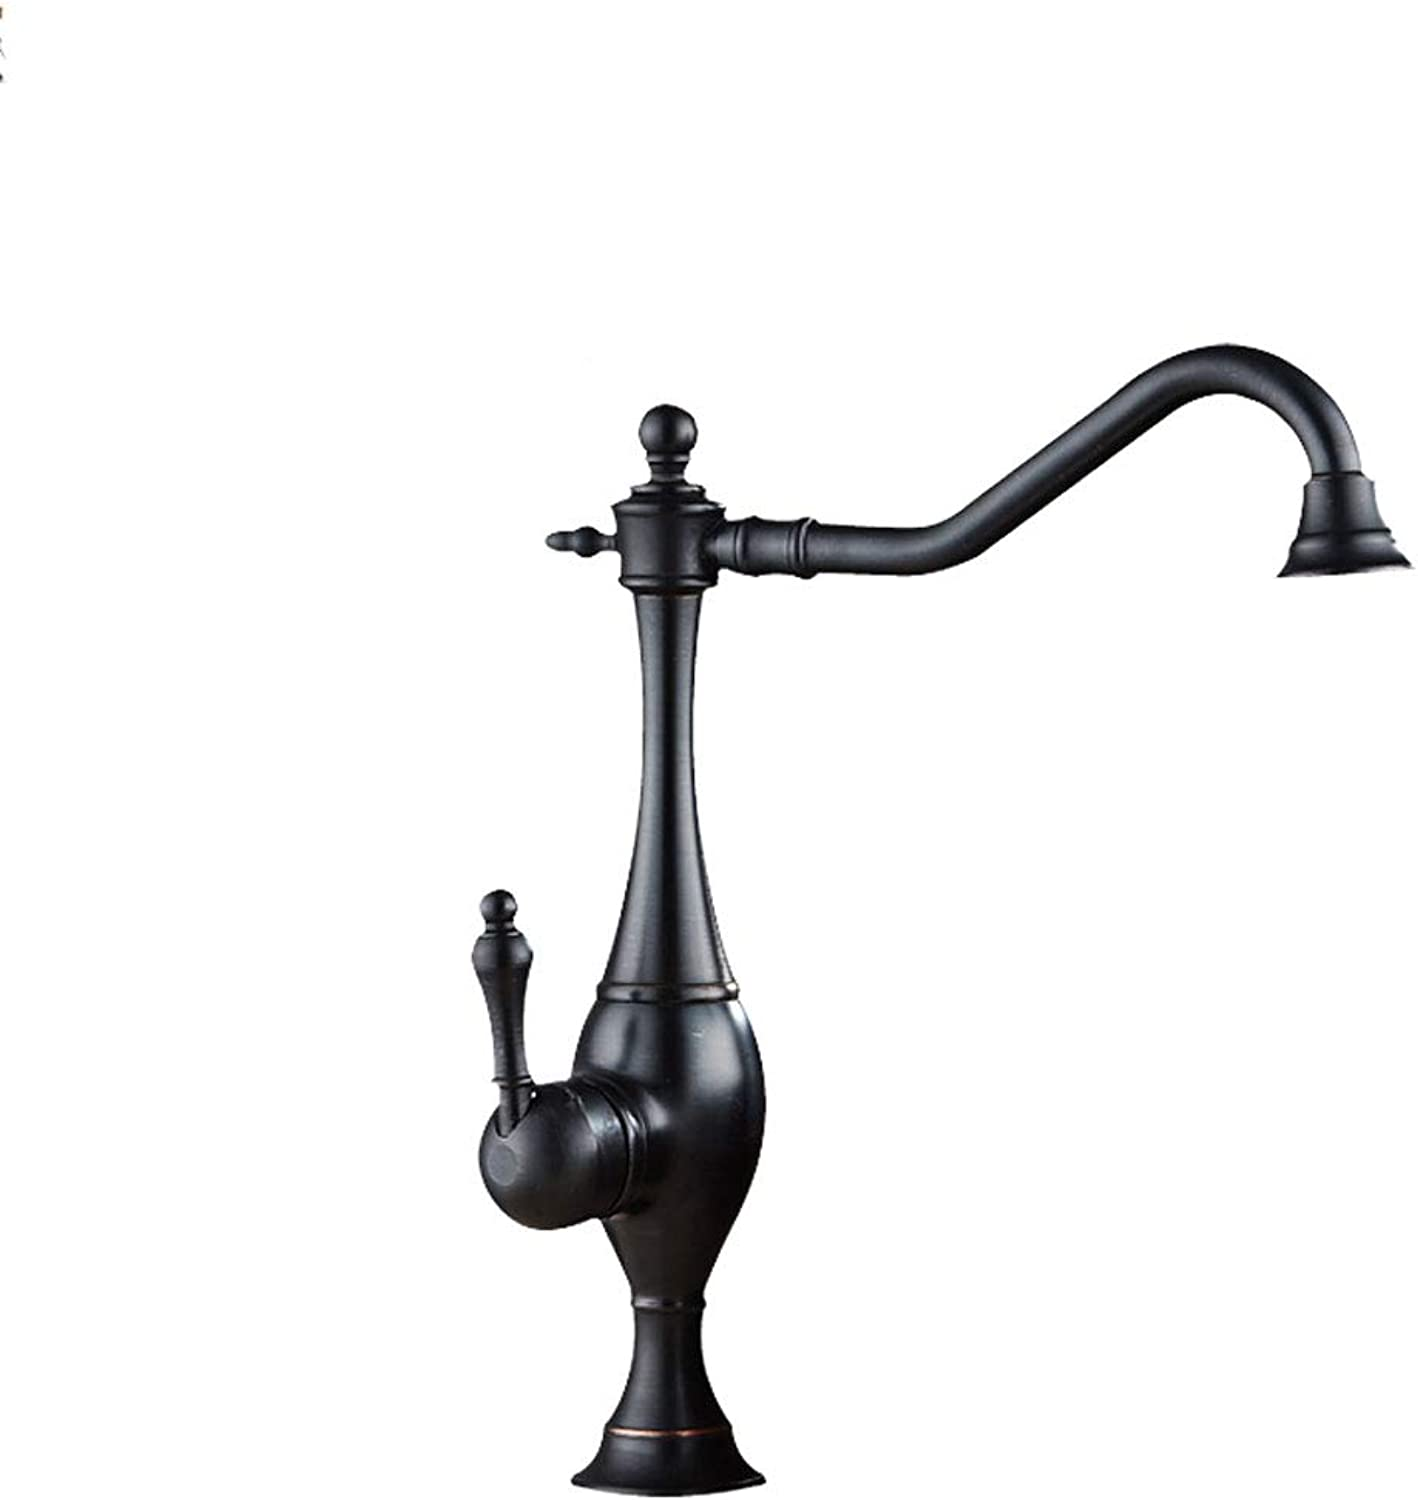 CHX Copper Antique Faucet Above Counter Basin Heighten Basin Hot And Cold Water Black Black Bronze CHXSF (color   BLACK)